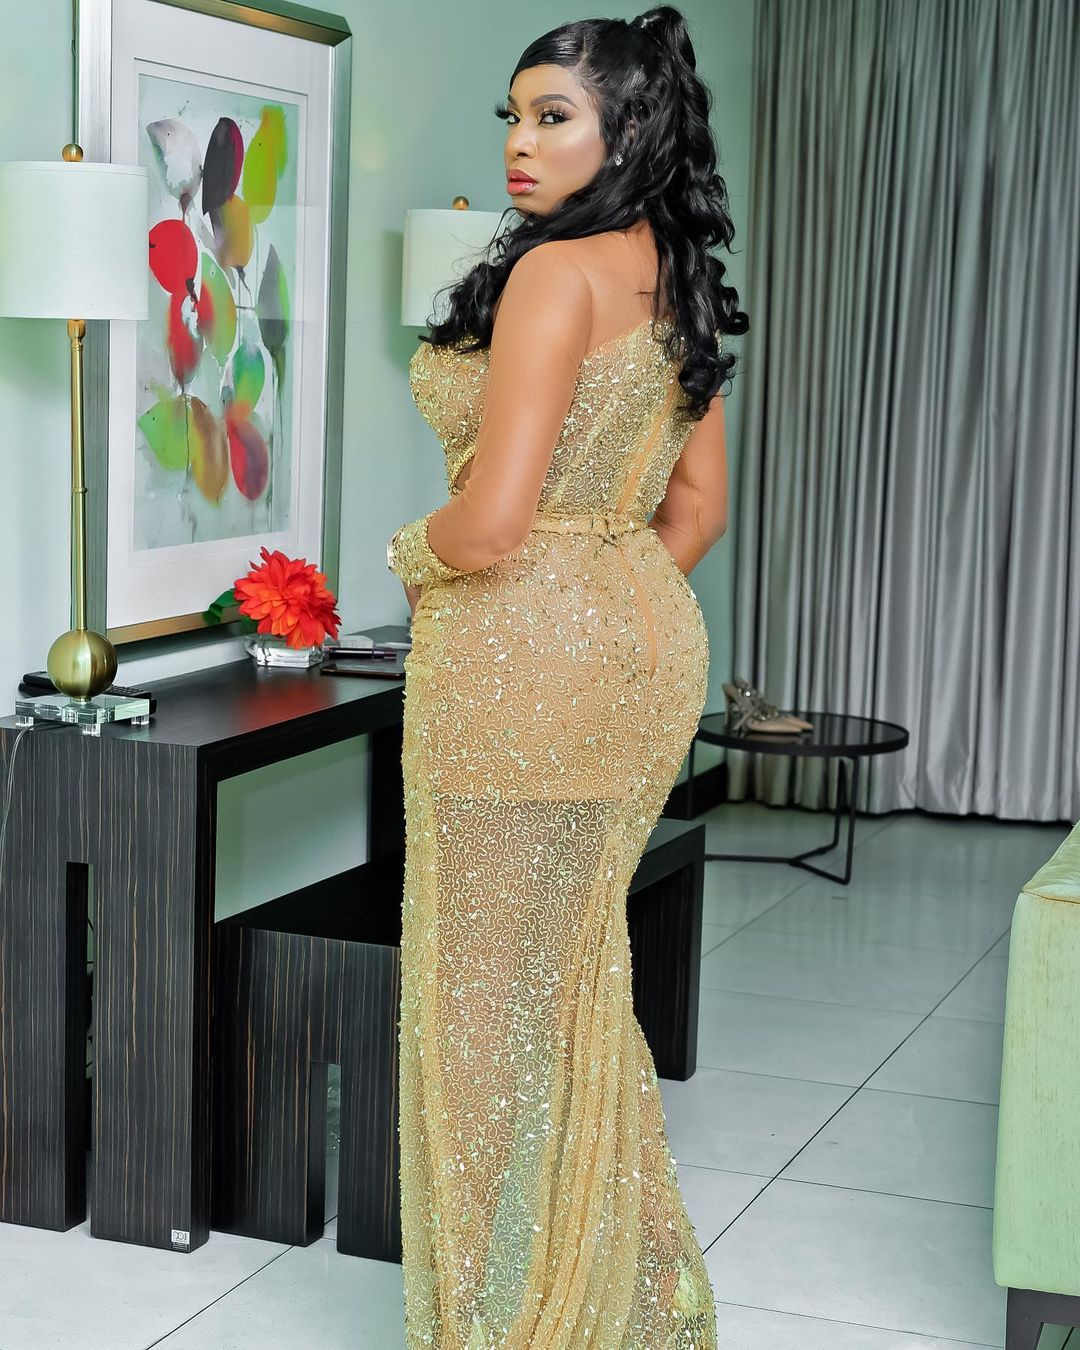 Chika Ike Look Gorgeous While Striking A Back Hip Thrust Pose